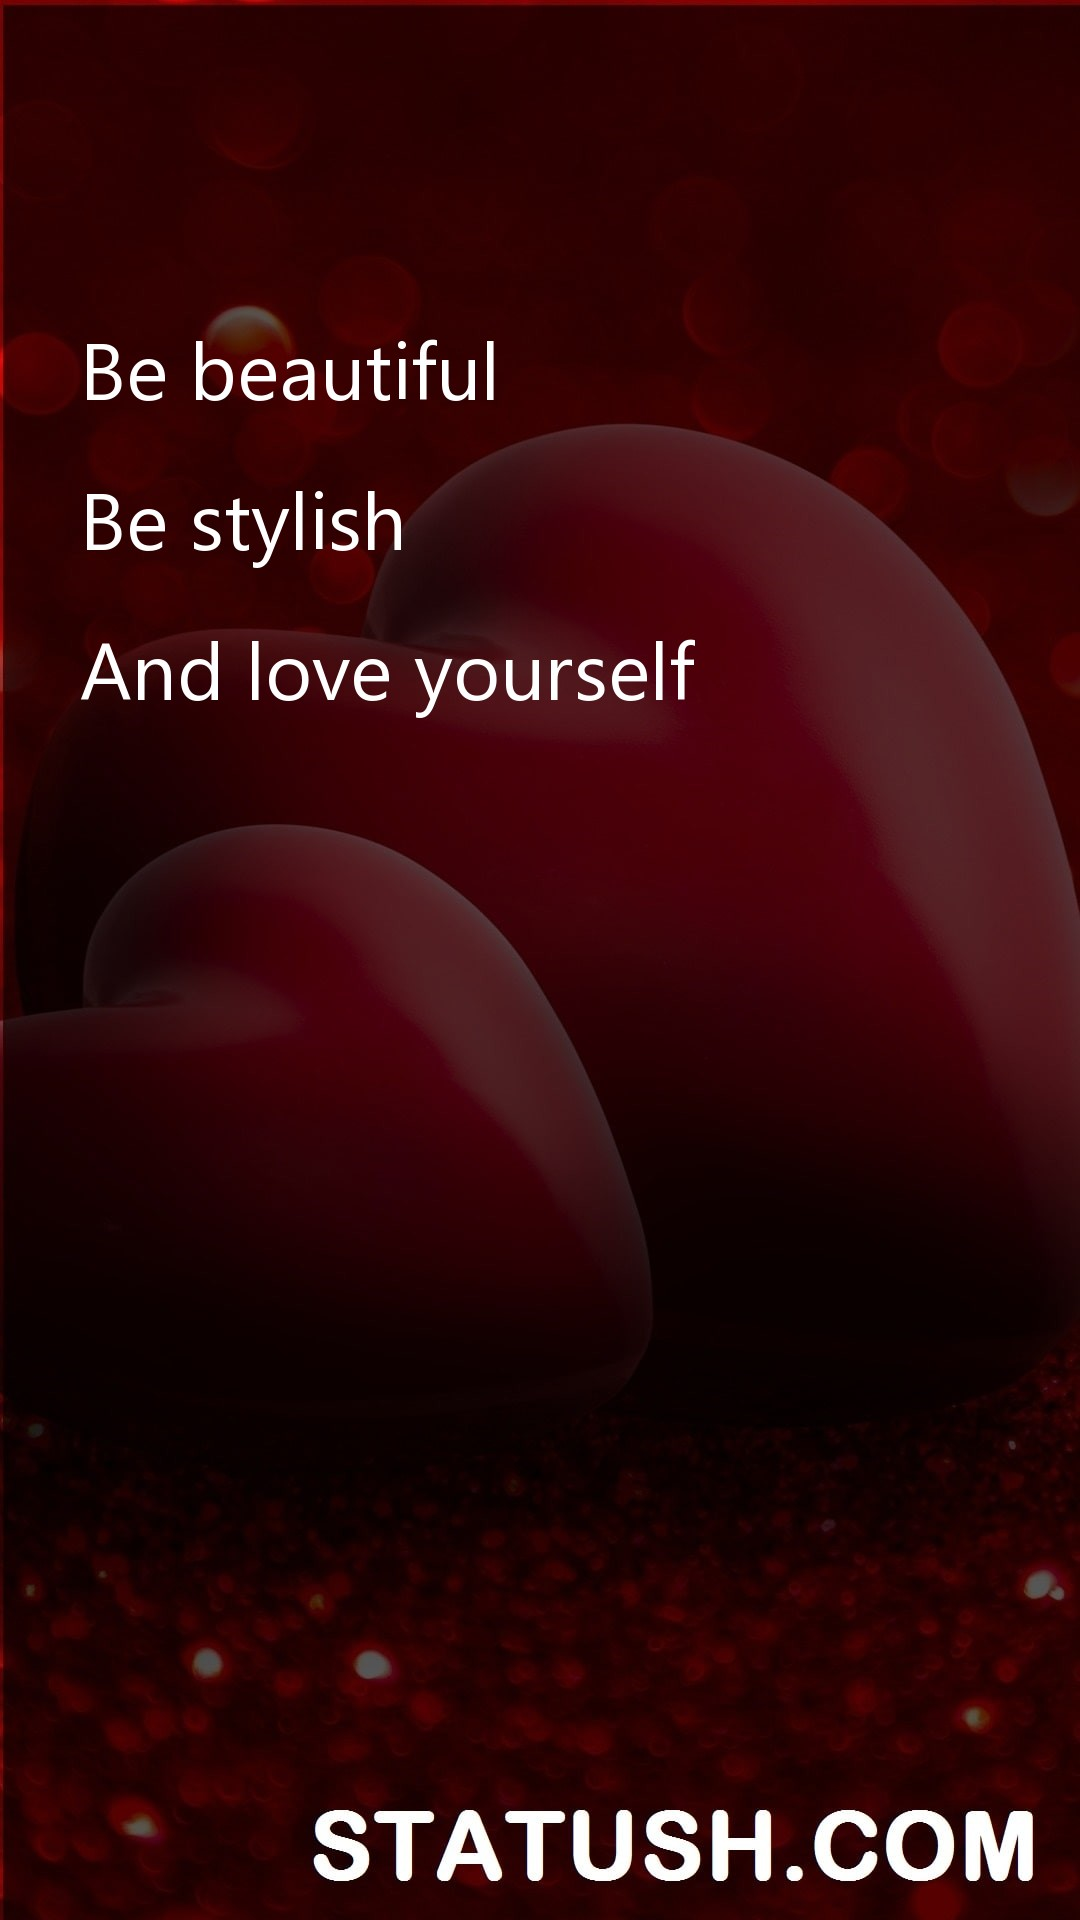 Be beautiful be stylish